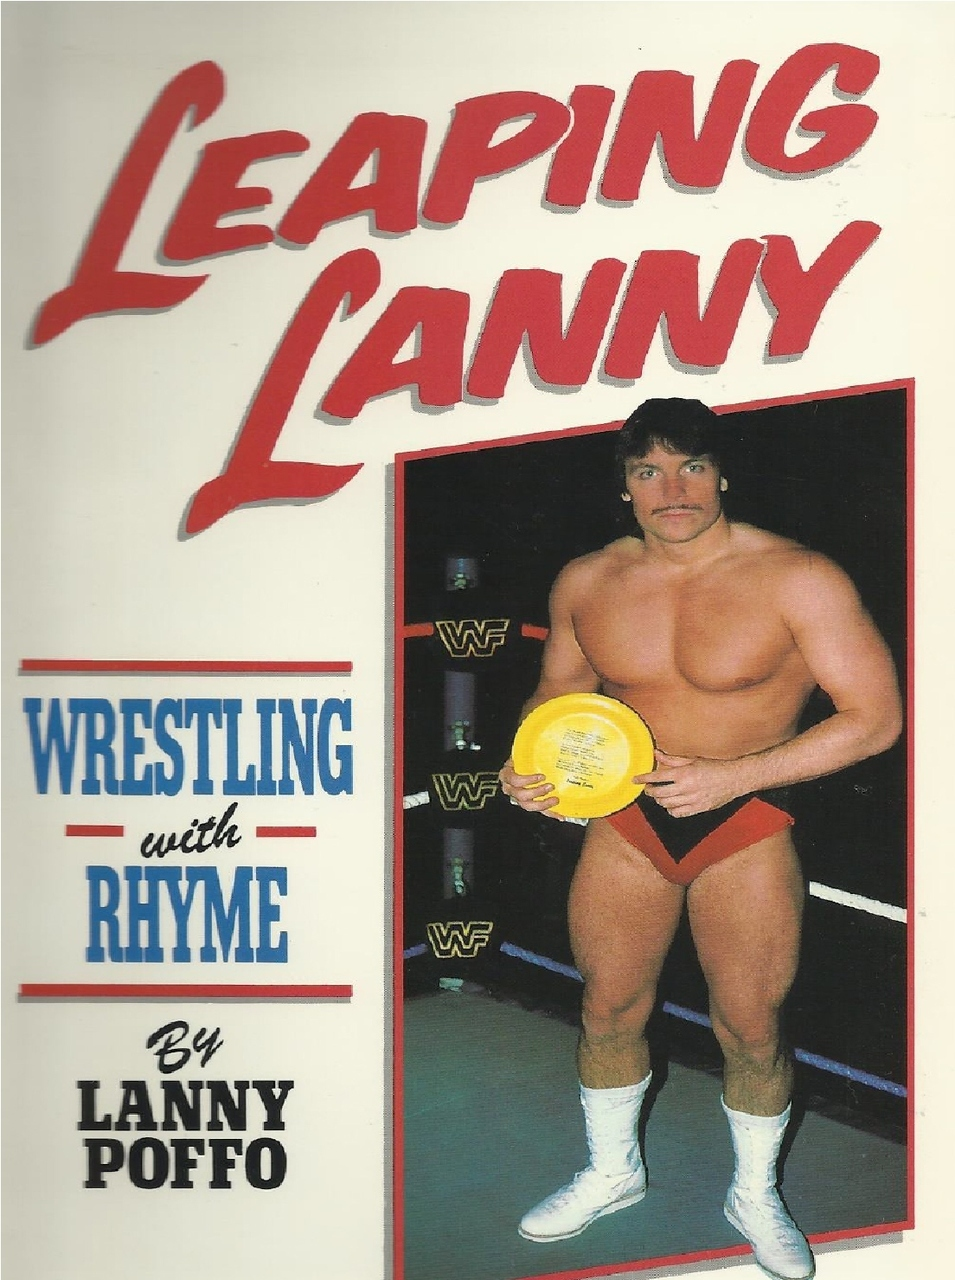 Leaping Lanny